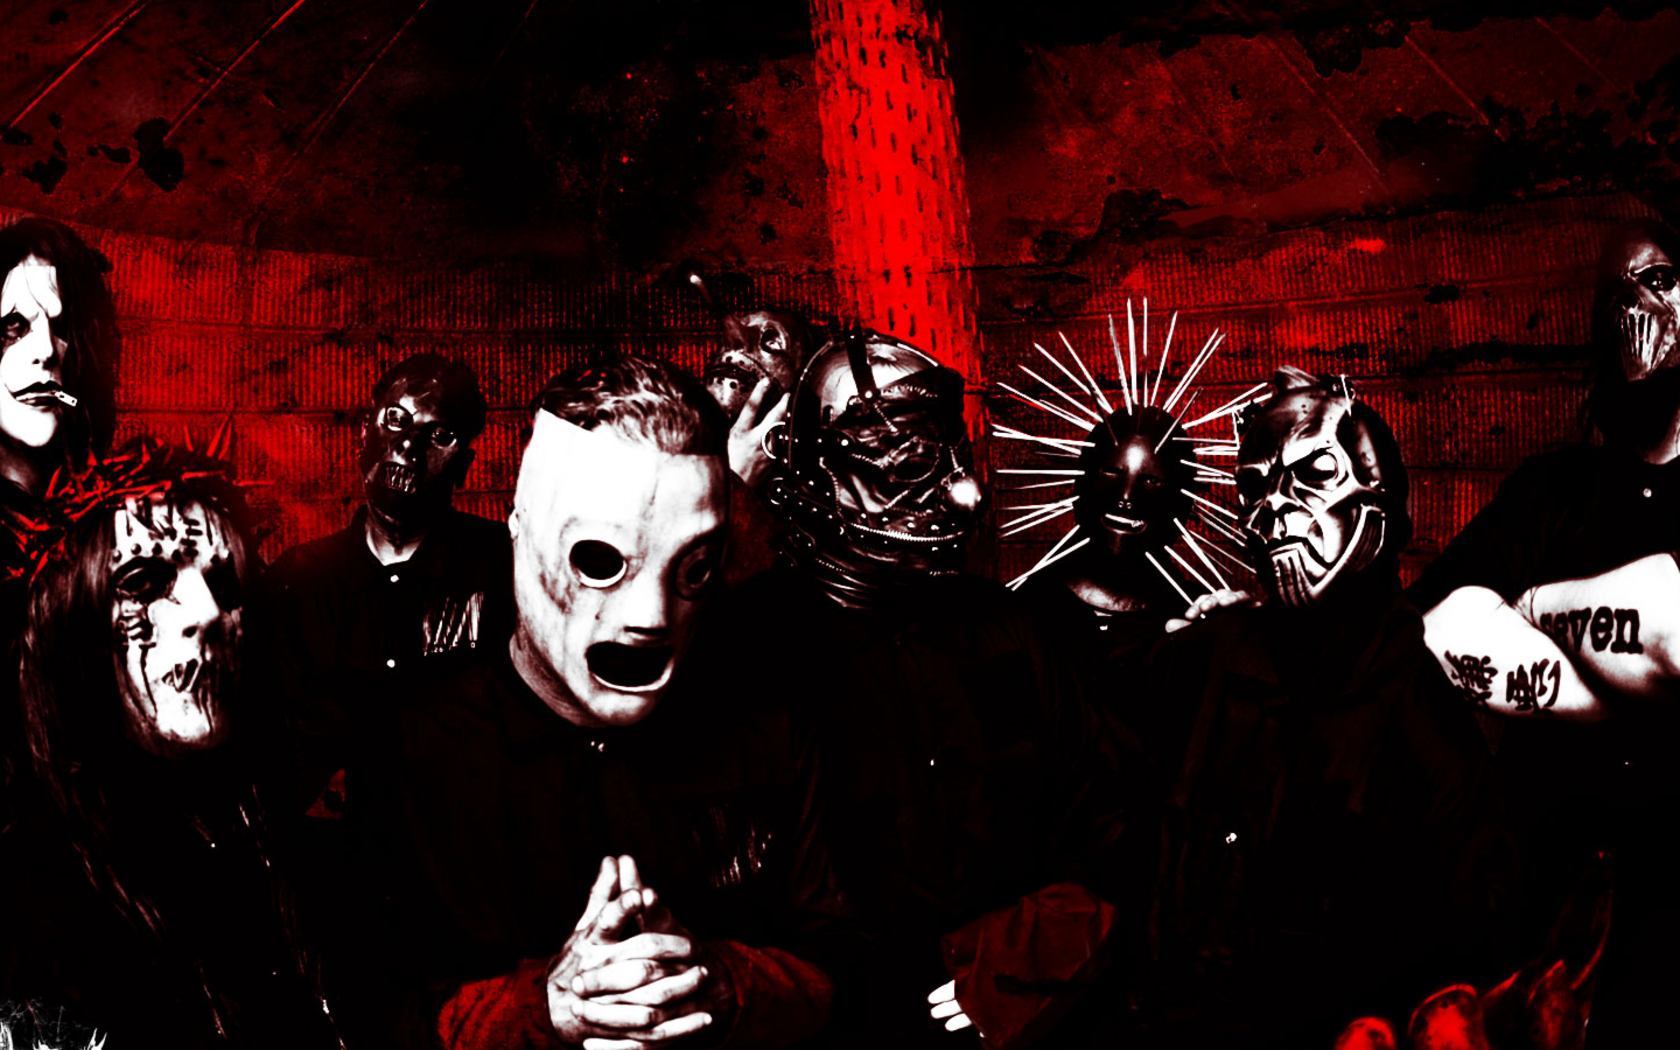 Slipknot wallpaper 1680x1050 70229